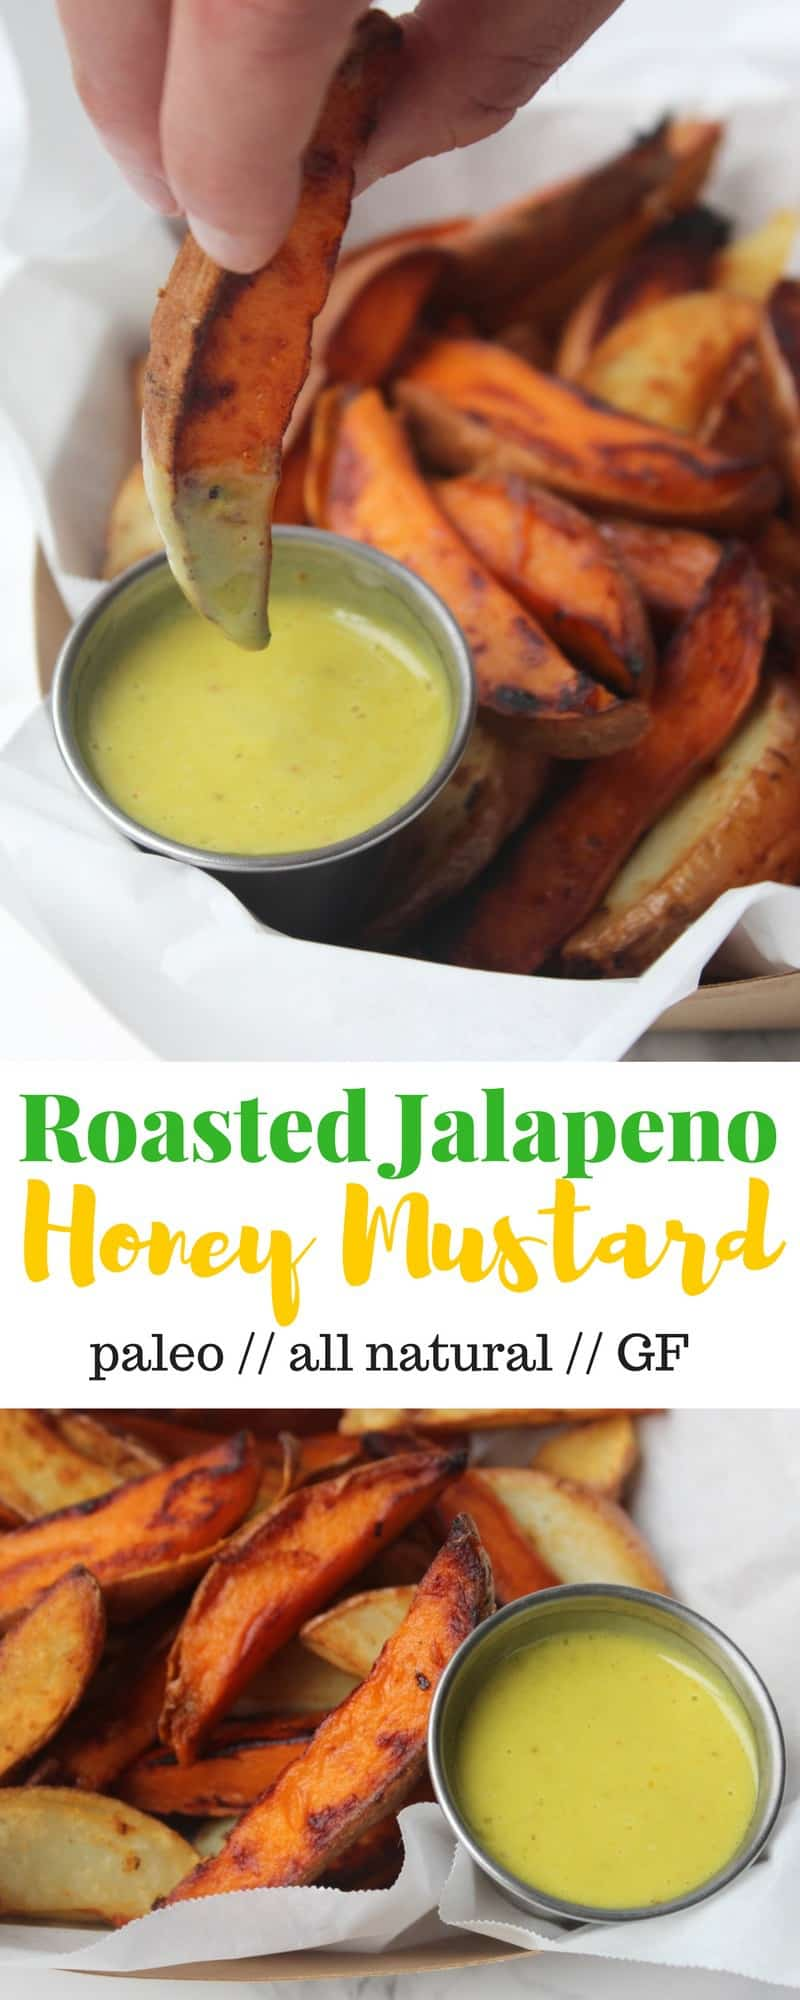 Take up your typical salads, veggies, and dipping needs with this kicked up Roasted Jalapeño Honey Mustard made from wholesome ingredients - Eat the Gains